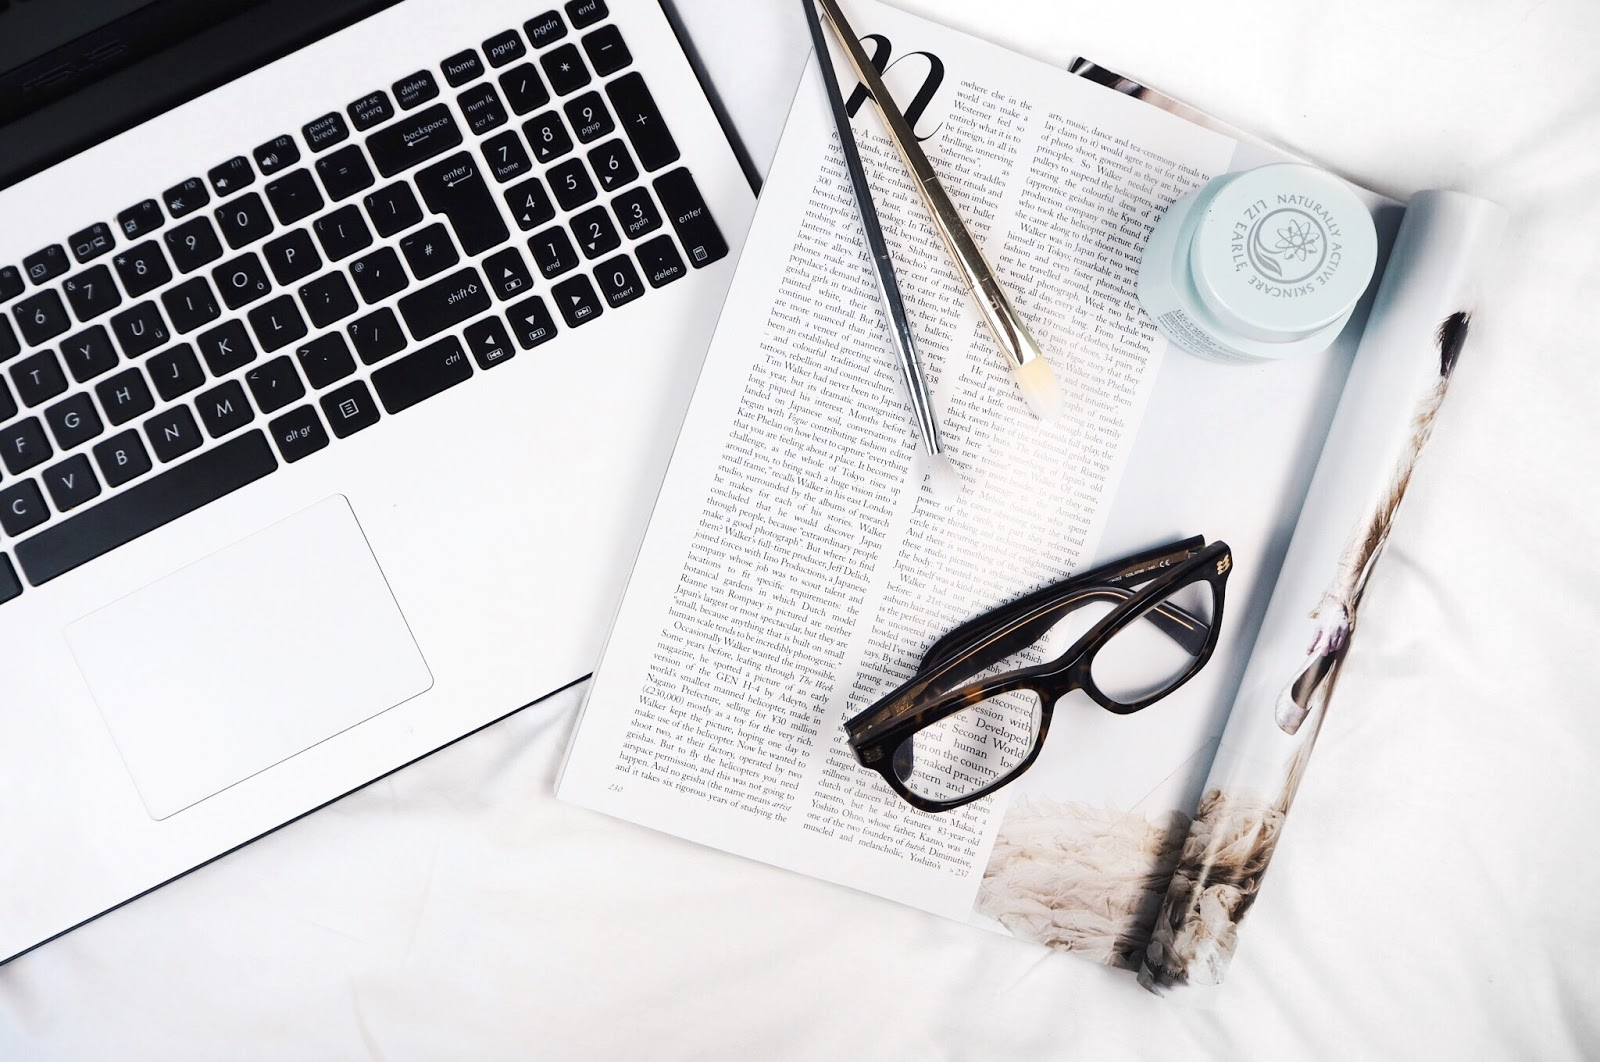 A white and black laptop with a glossy magazine, crocodile print Boots Opticians glasses, Real Techniques Bold Metals brushes and Liz Earle hydrating moisturiser flatlay photograph